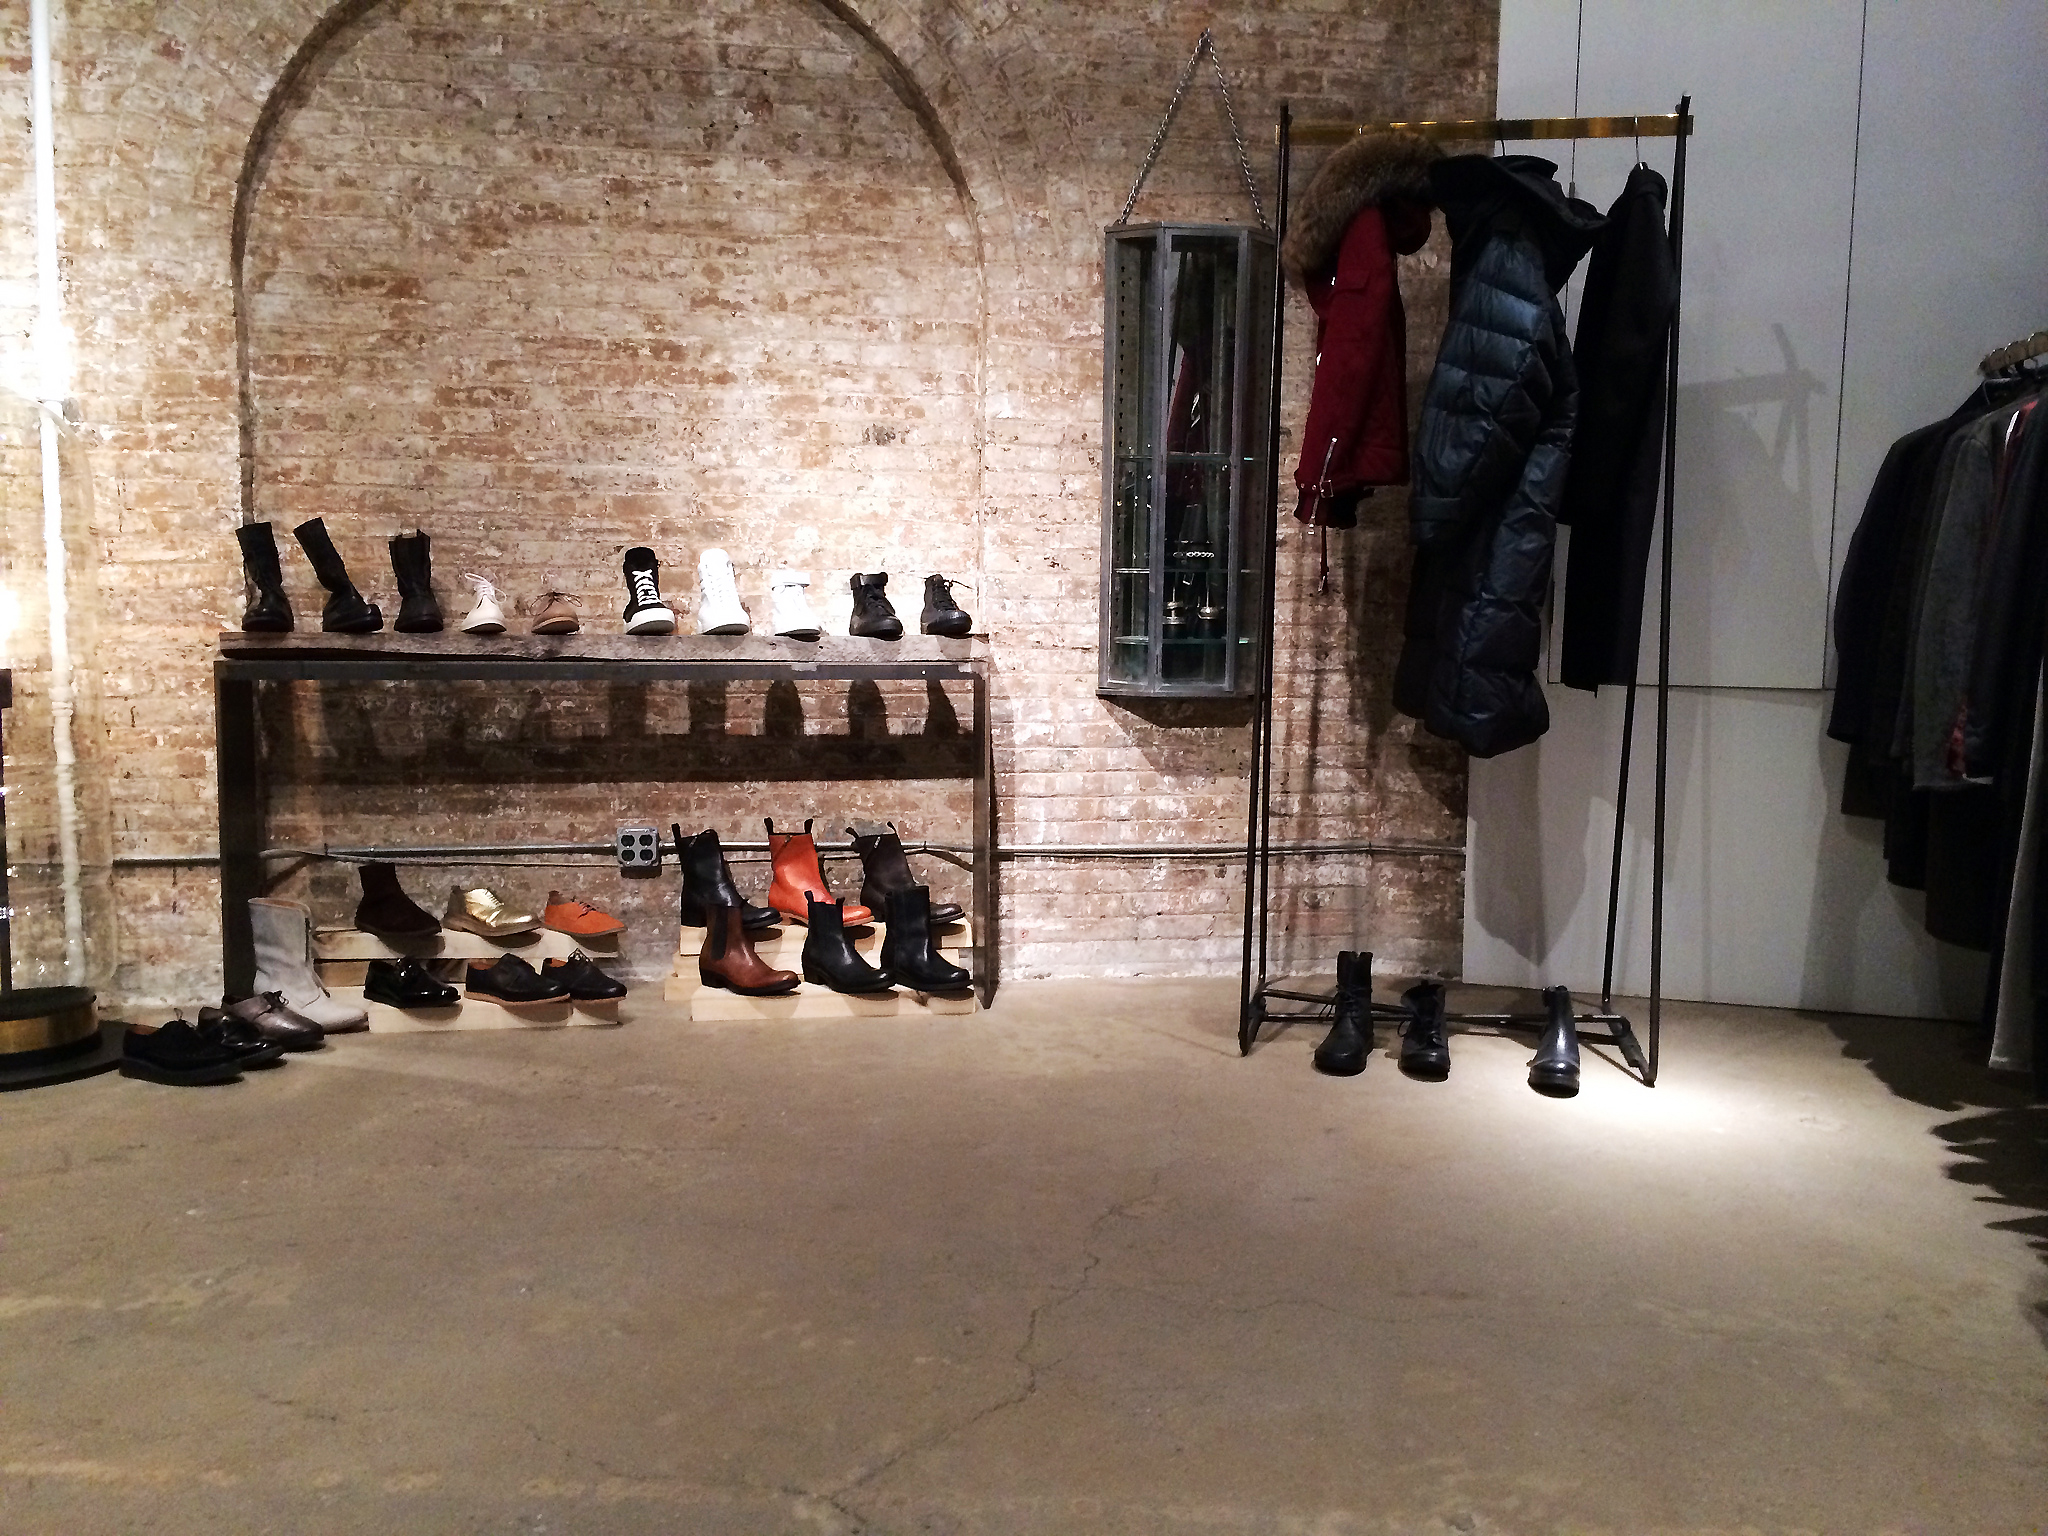 Menswear and shoes at Patrons of the New. in New York. Photo by alphacityguides.